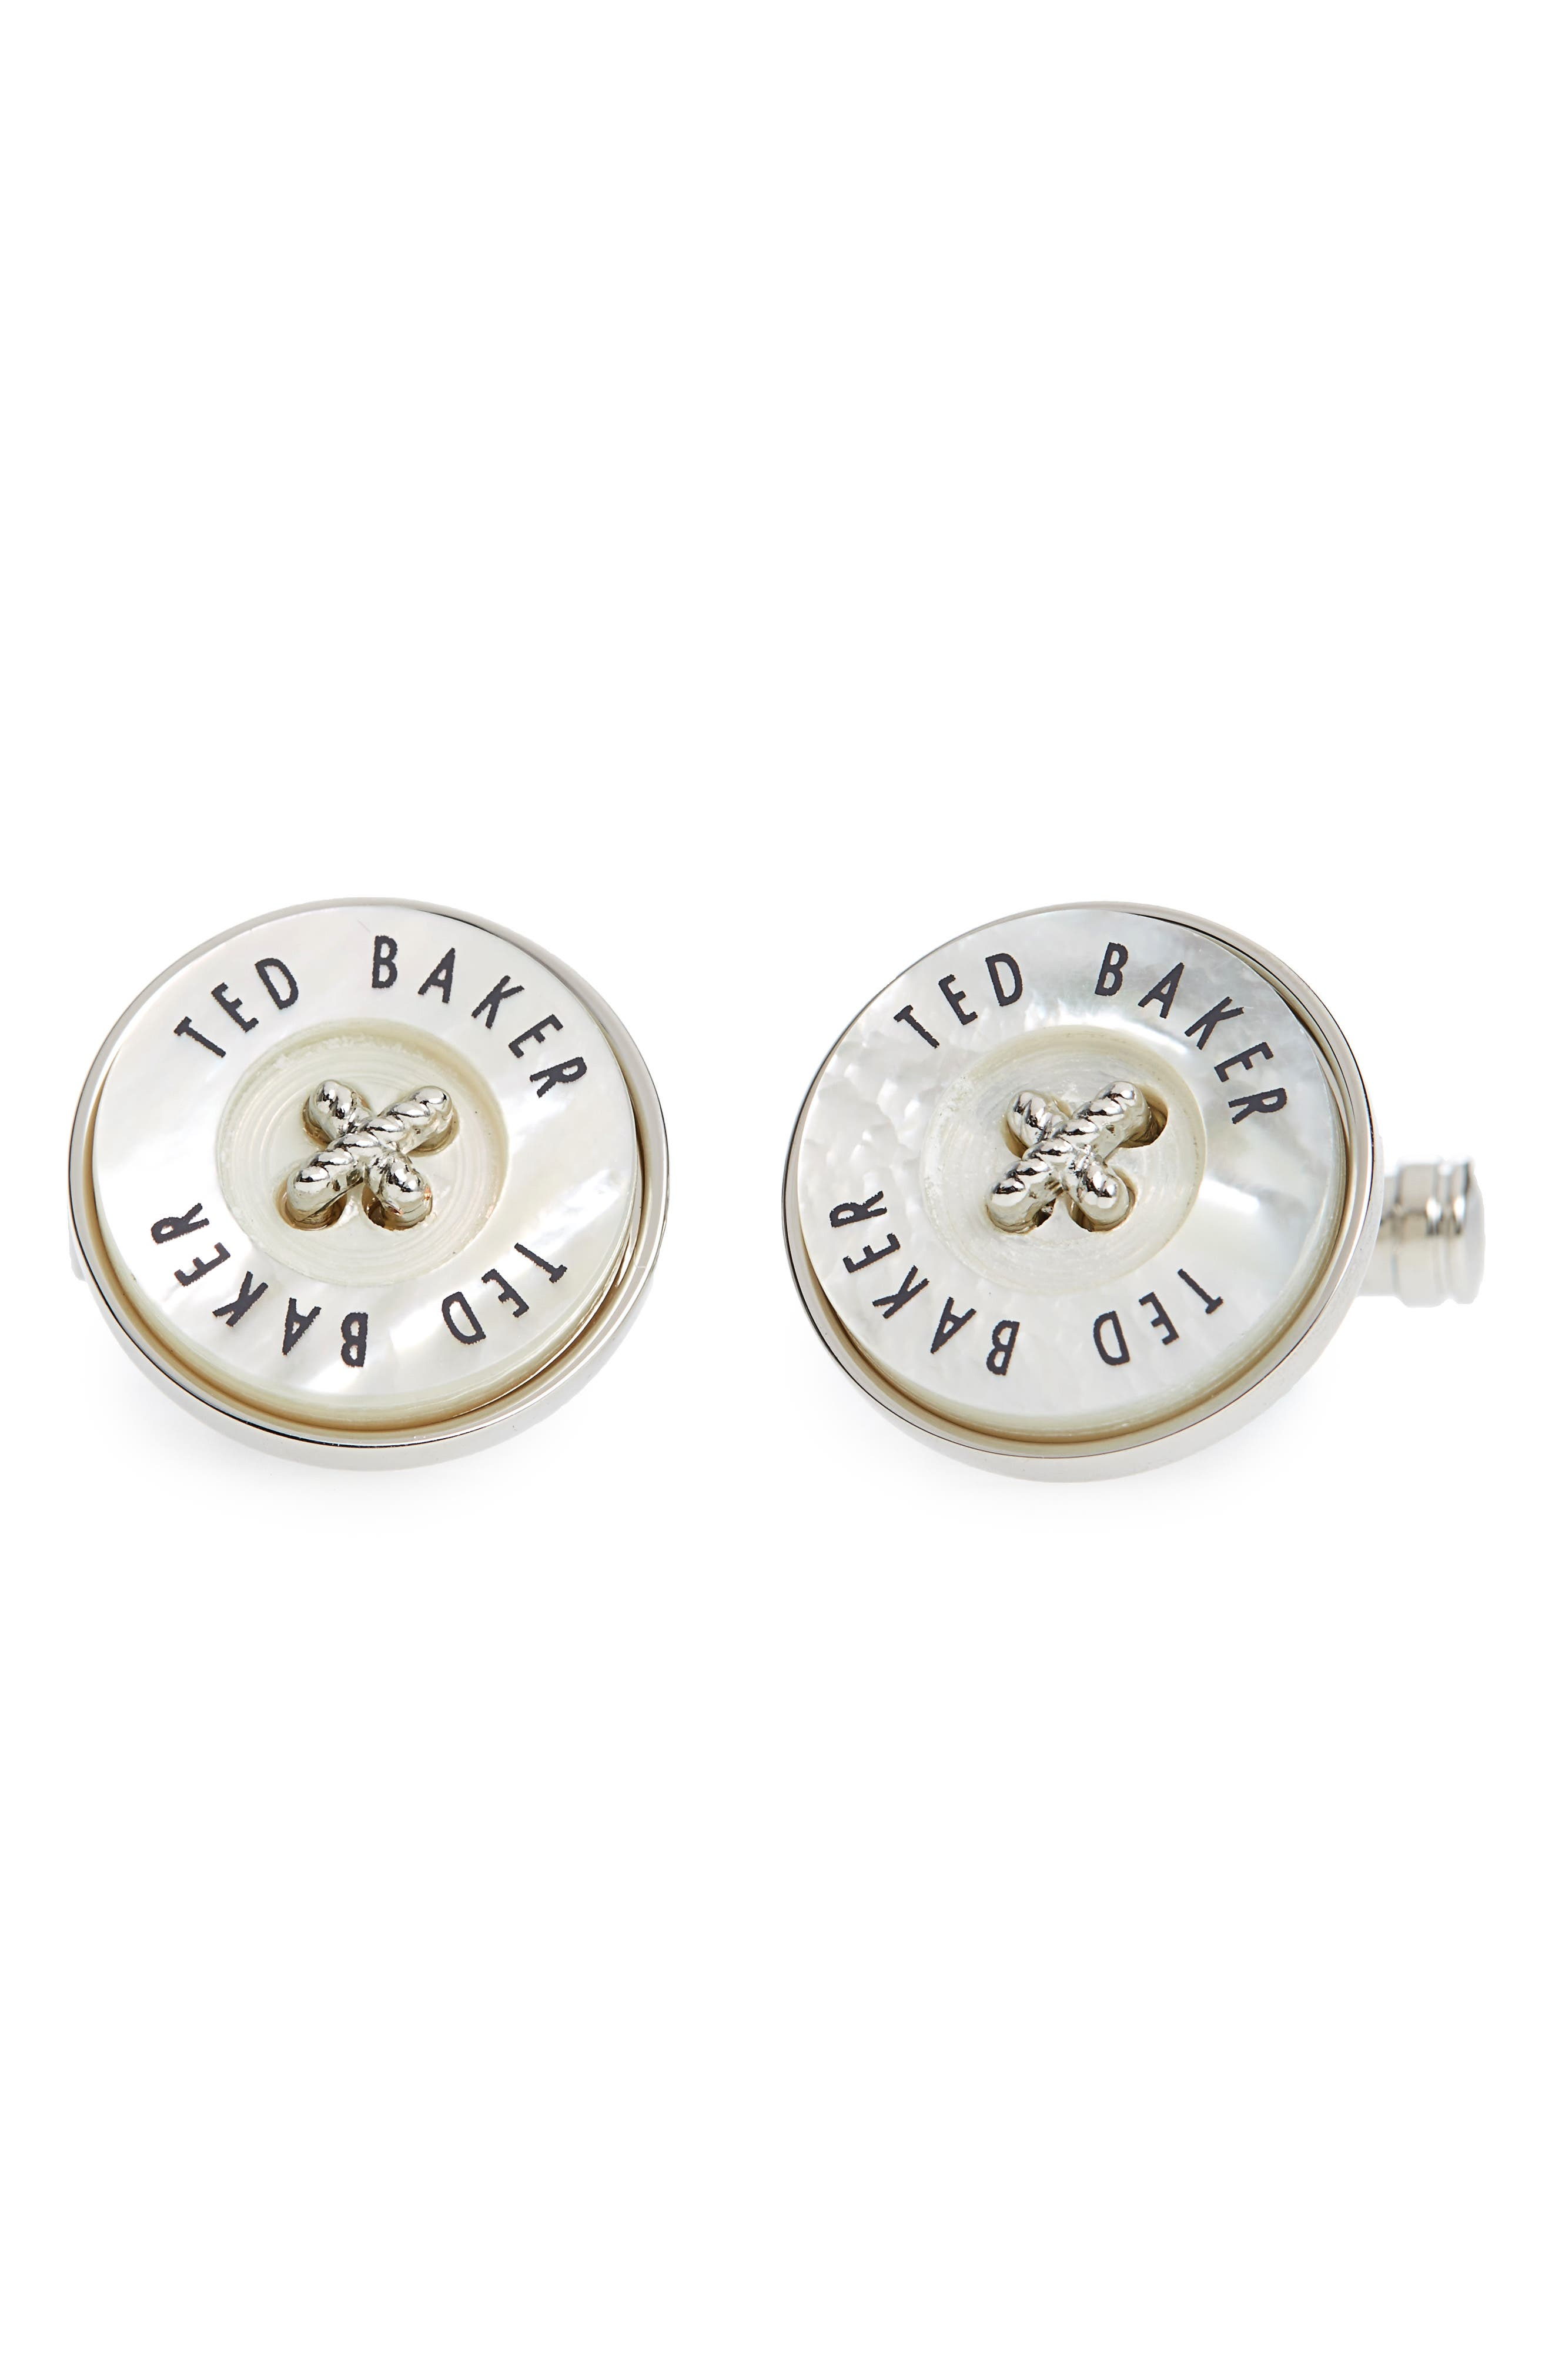 Sizzle Cuff Links,                         Main,                         color, 110